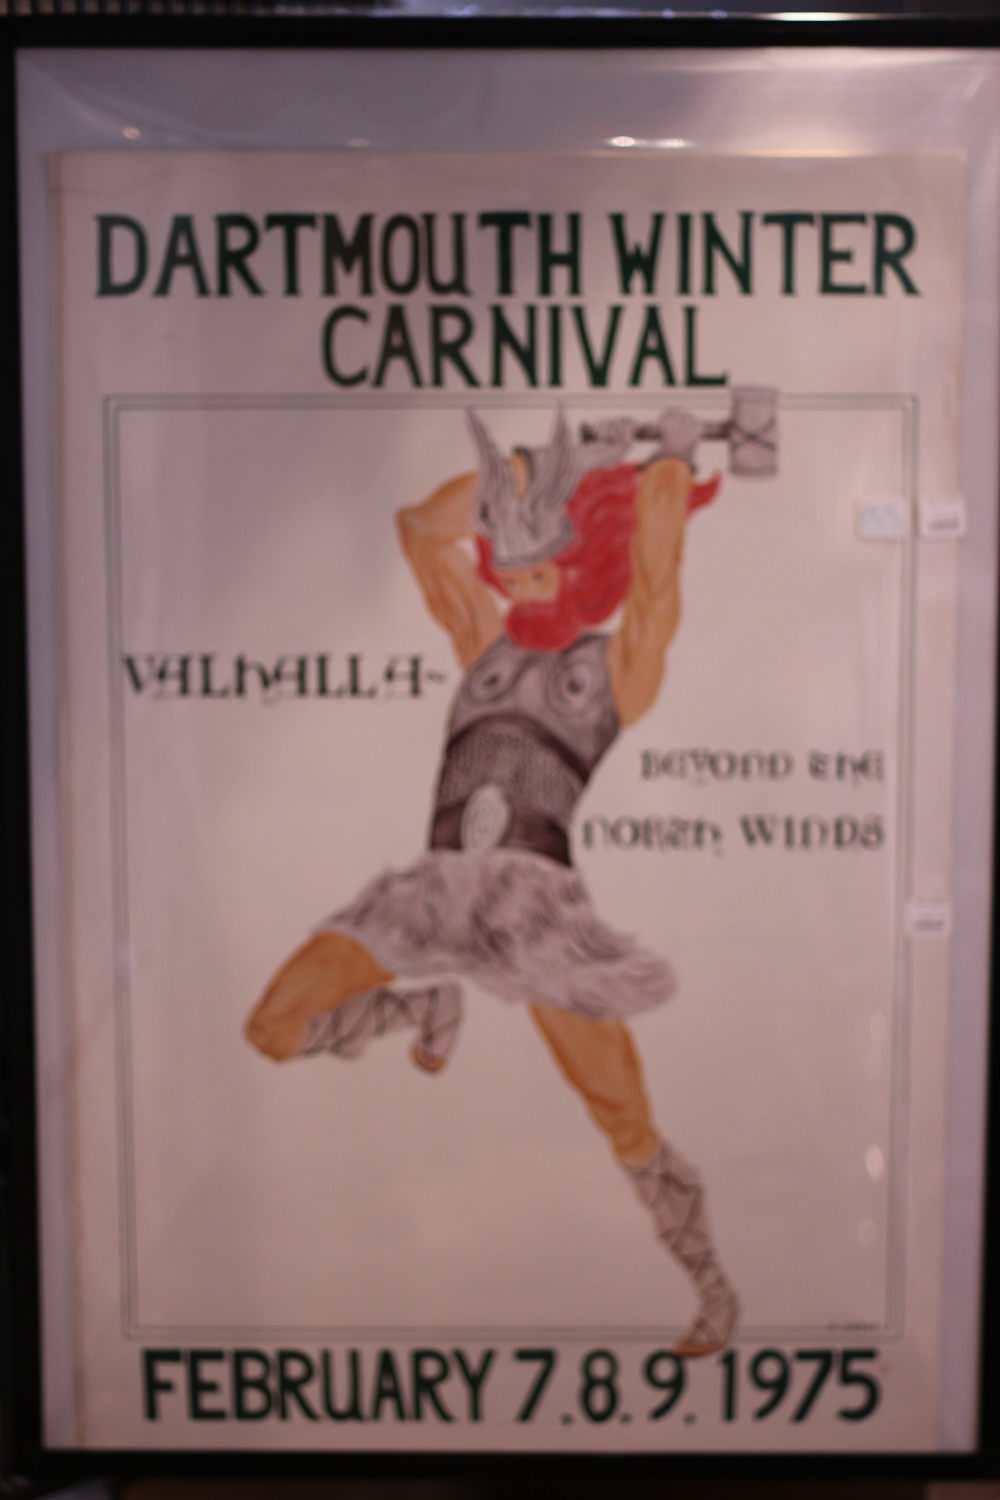 Dartmouth Winter Carnival 1975